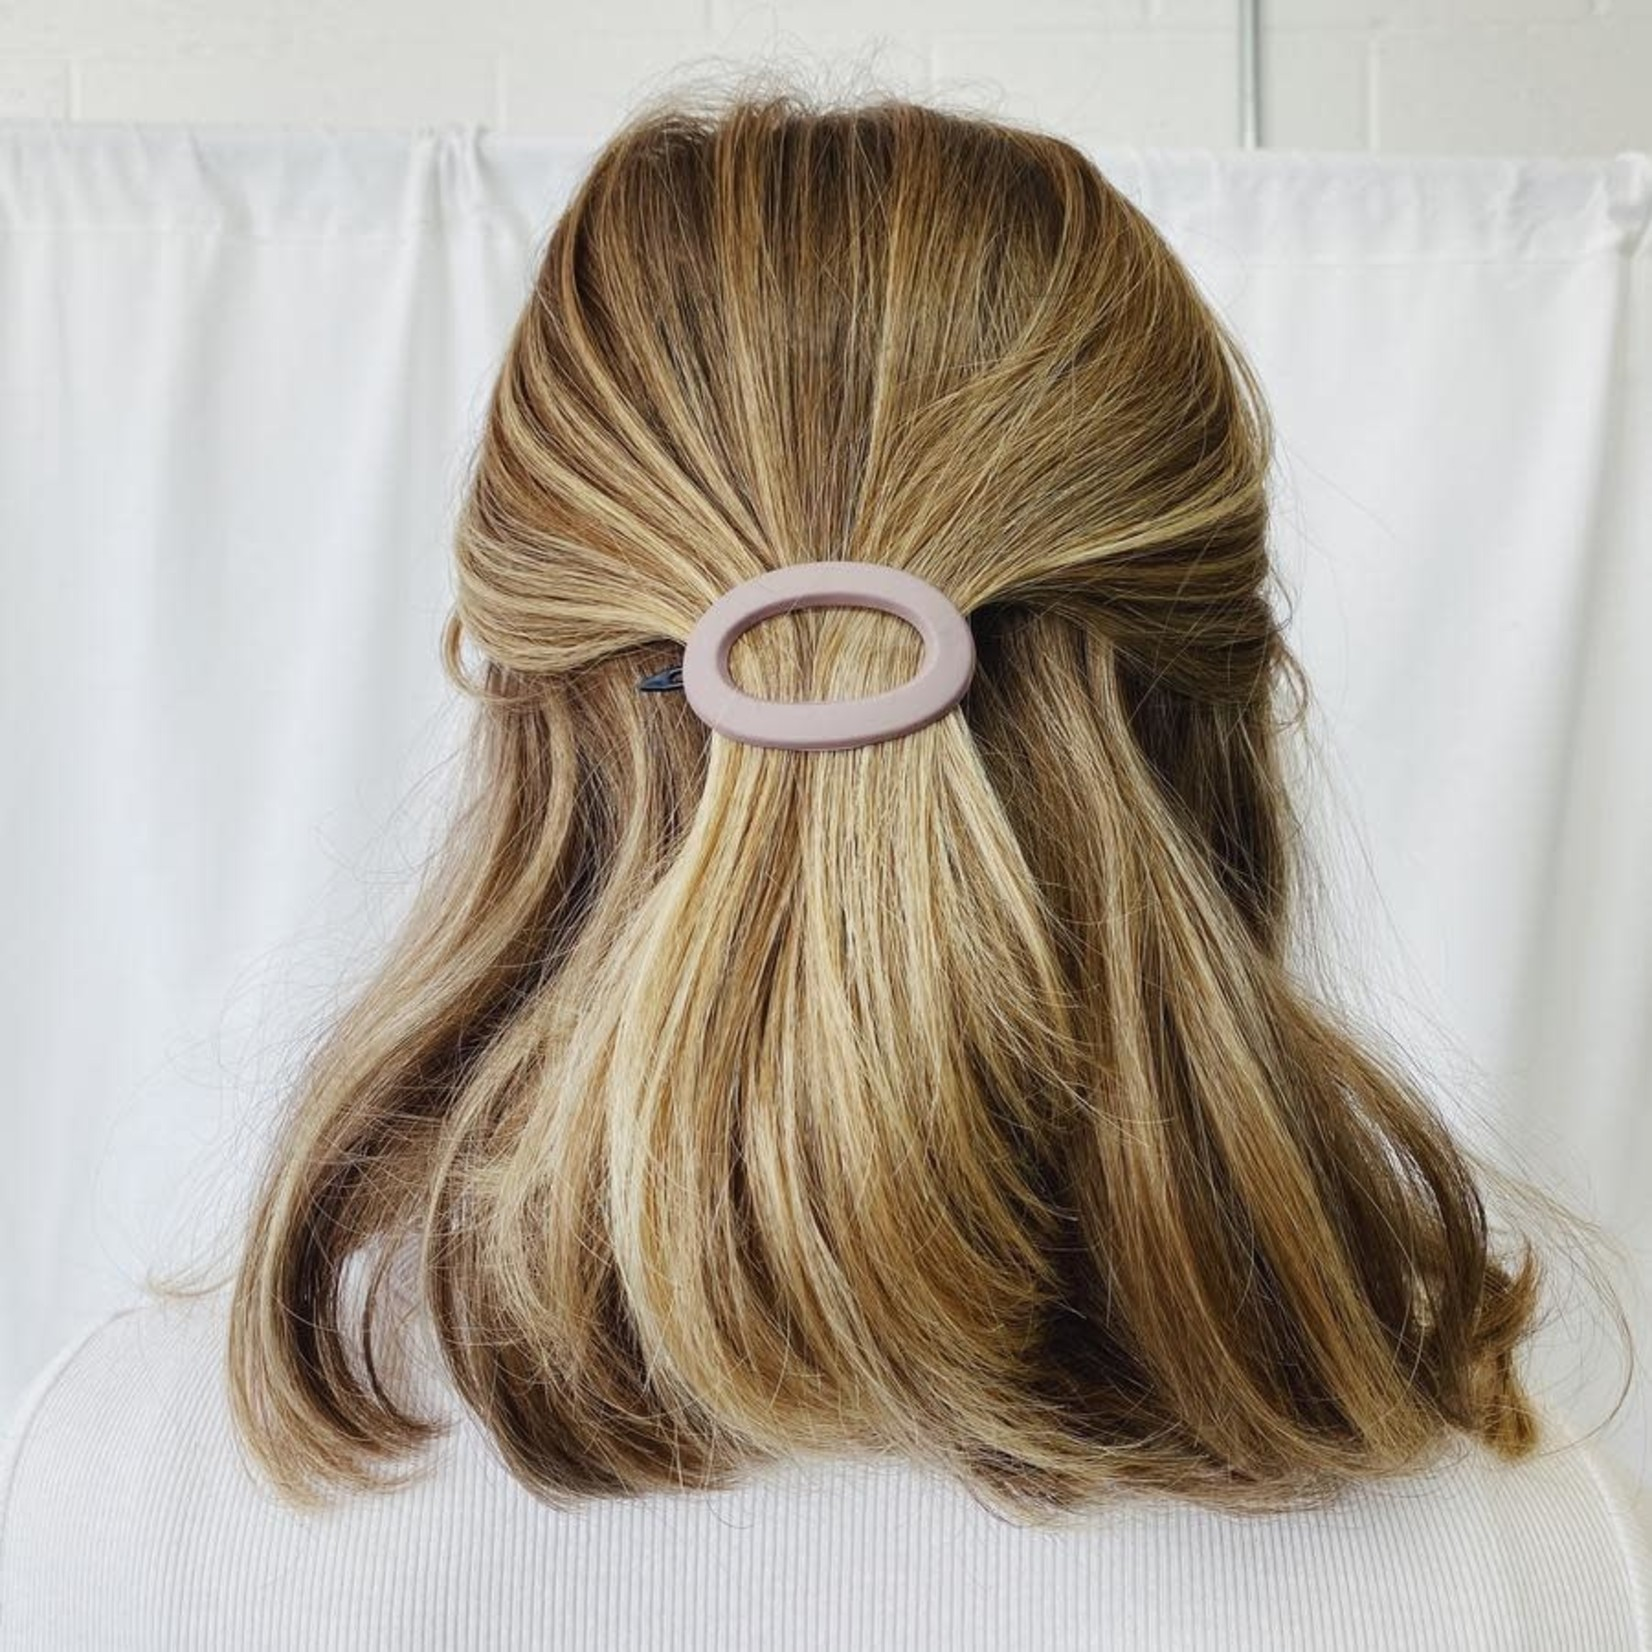 Horace Jewelry Horace barrette HORATO rose